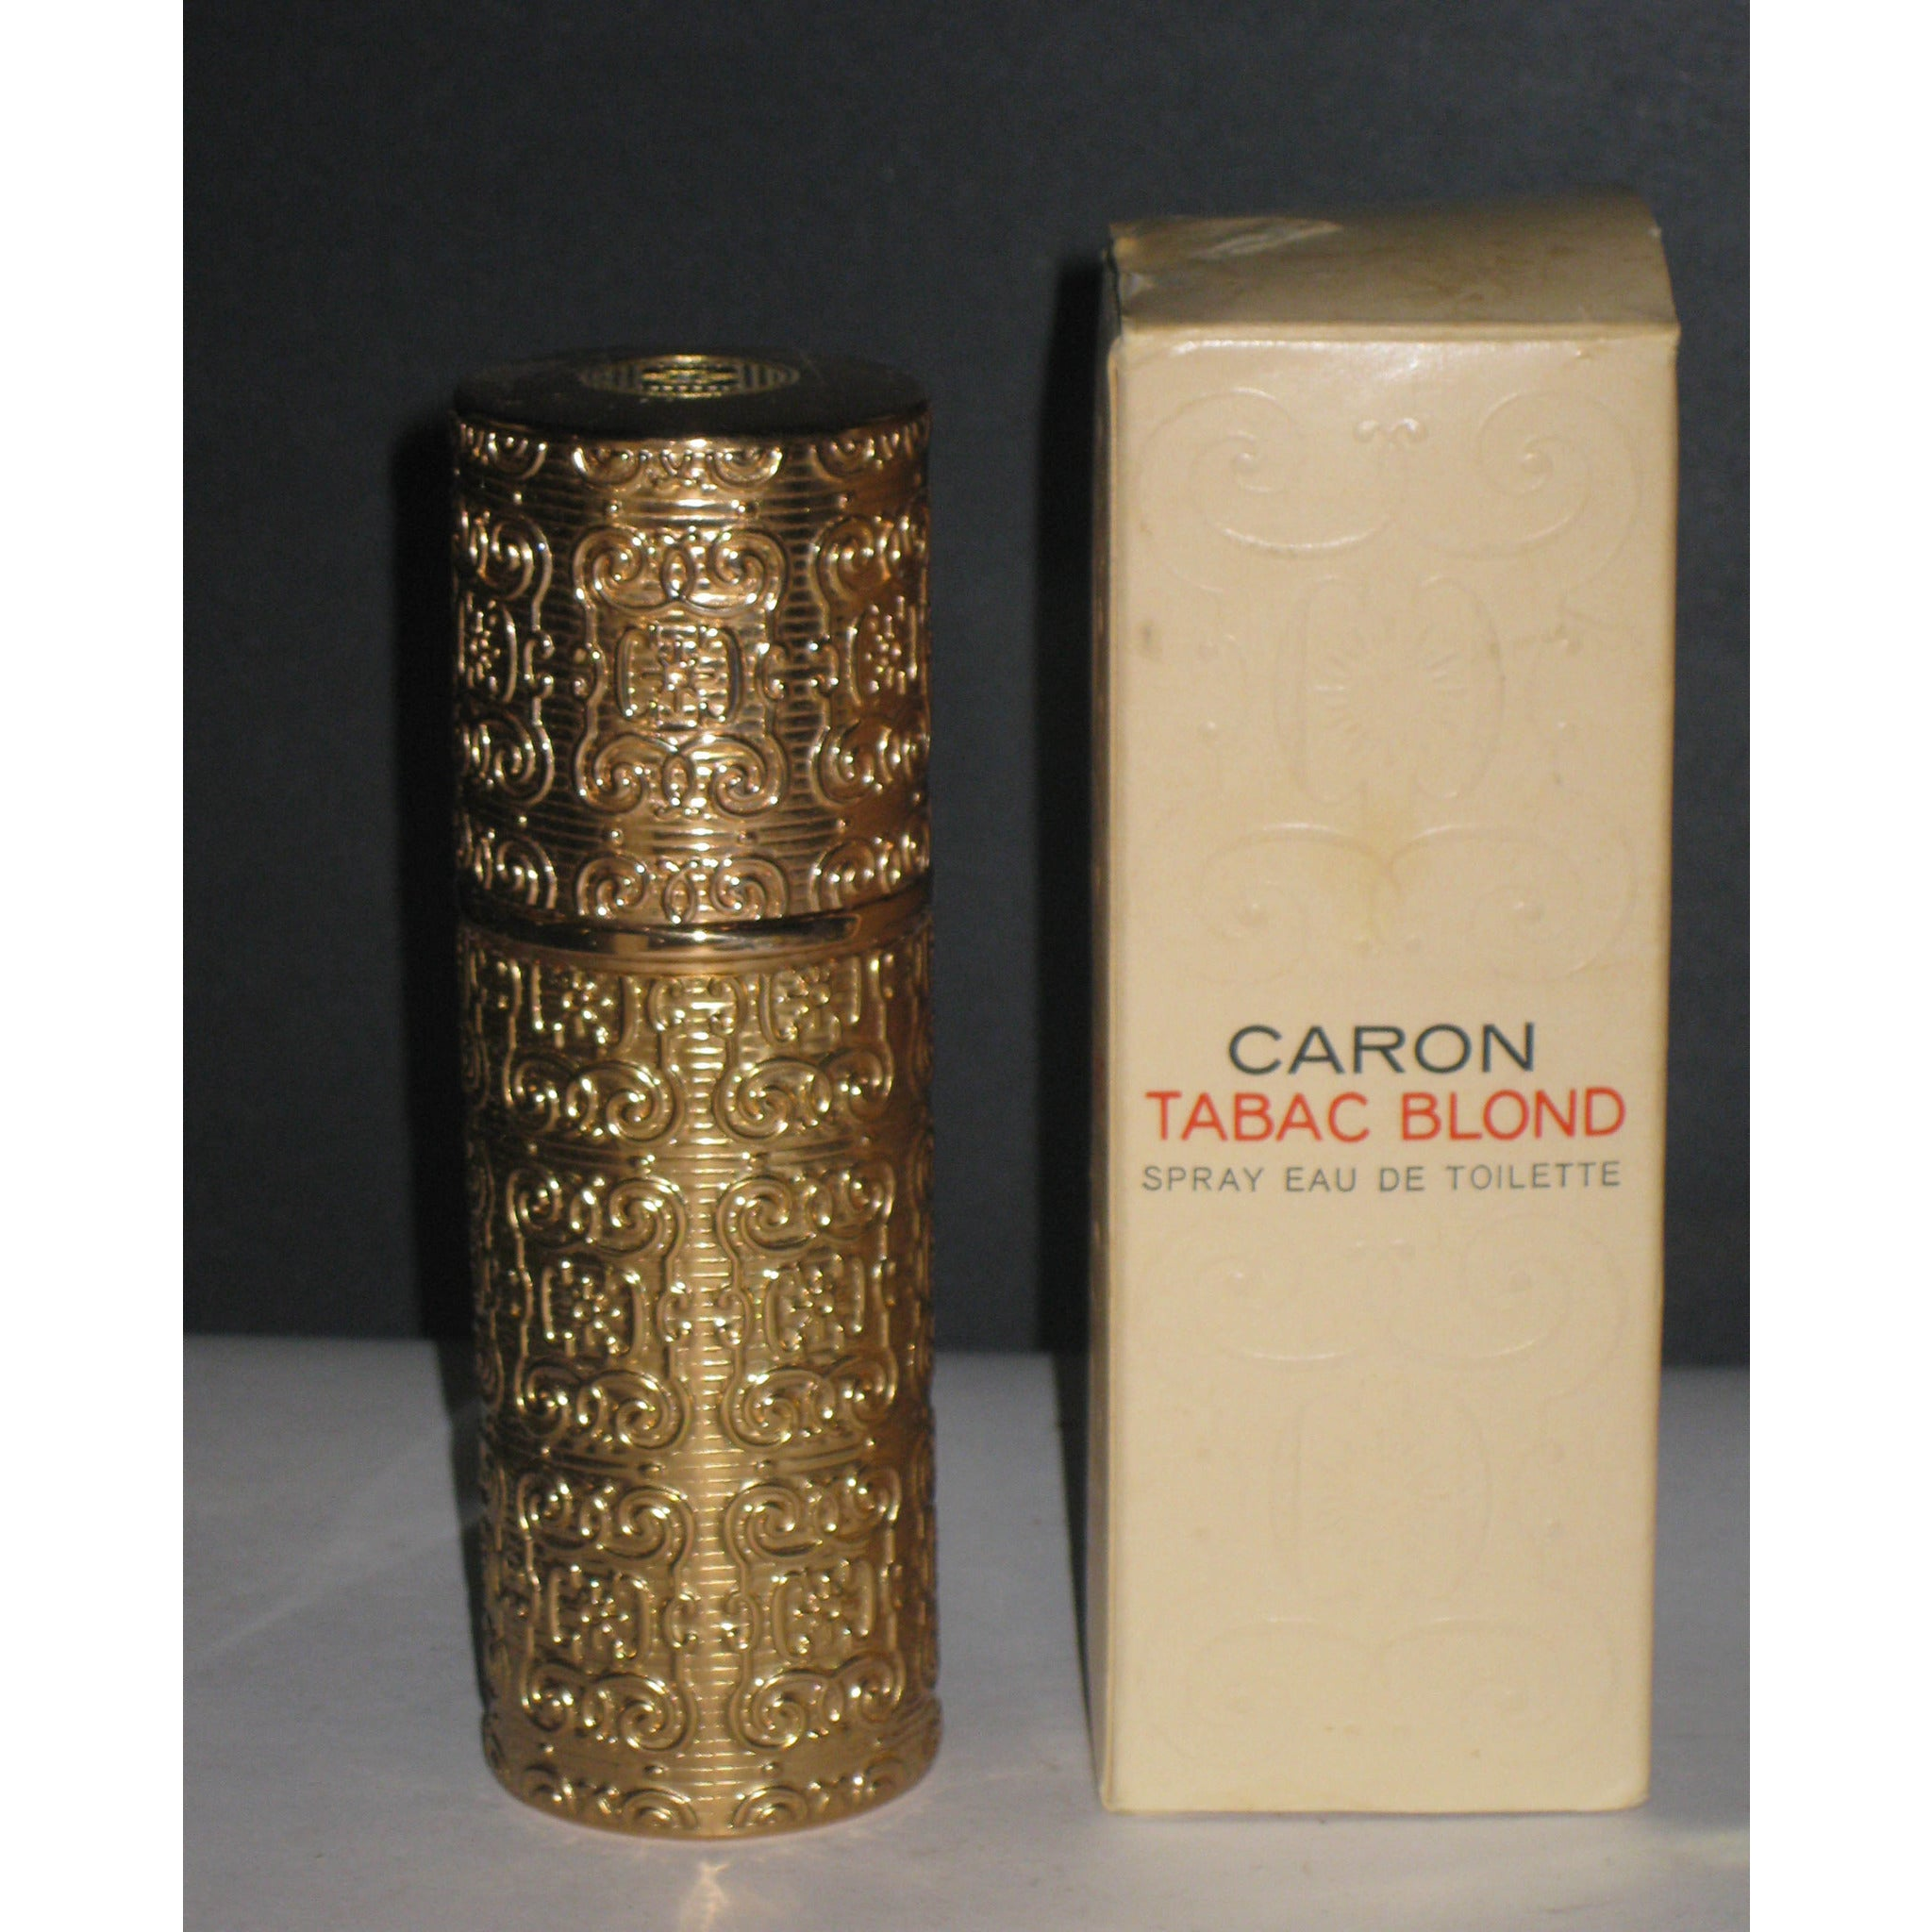 Vintage Caron Tabac Blond Eau De Toilette Refillable Spray Canister